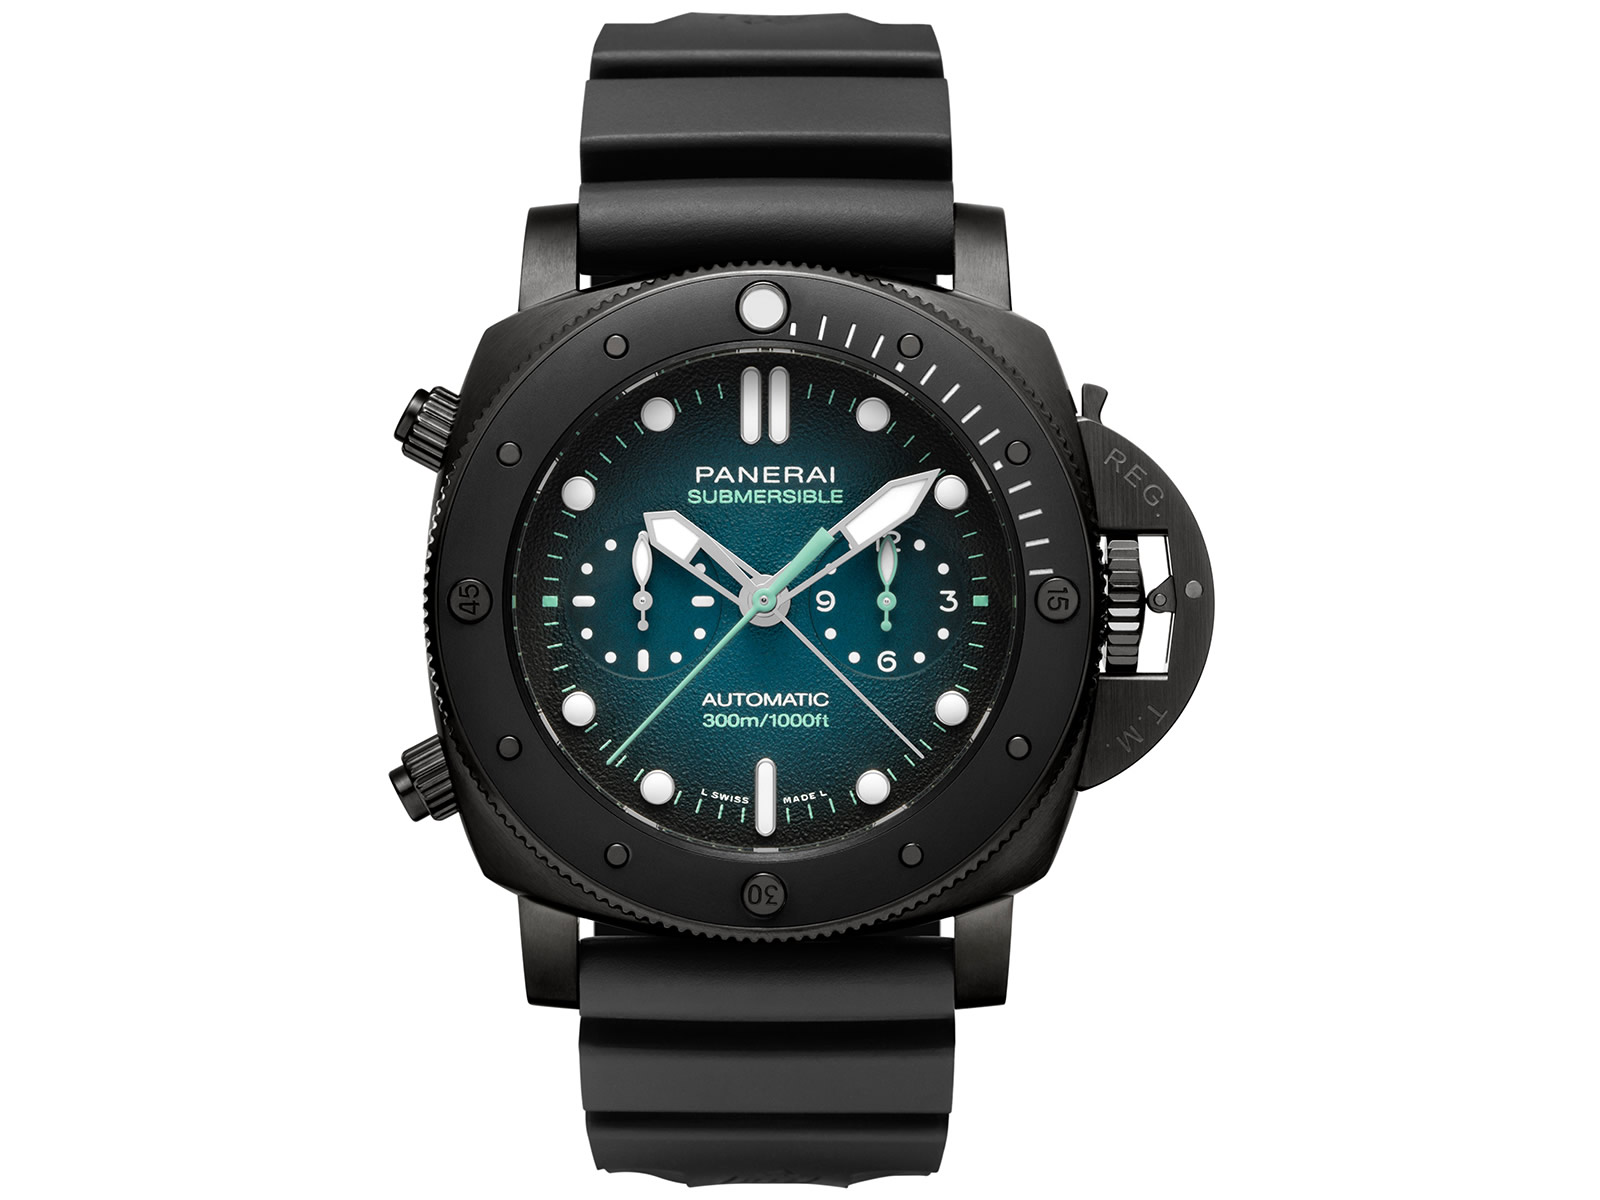 pam00983-officine-panerai-submersible-chrono-guillaume-nery-edition-blue-and-black-dial-6-.jpg